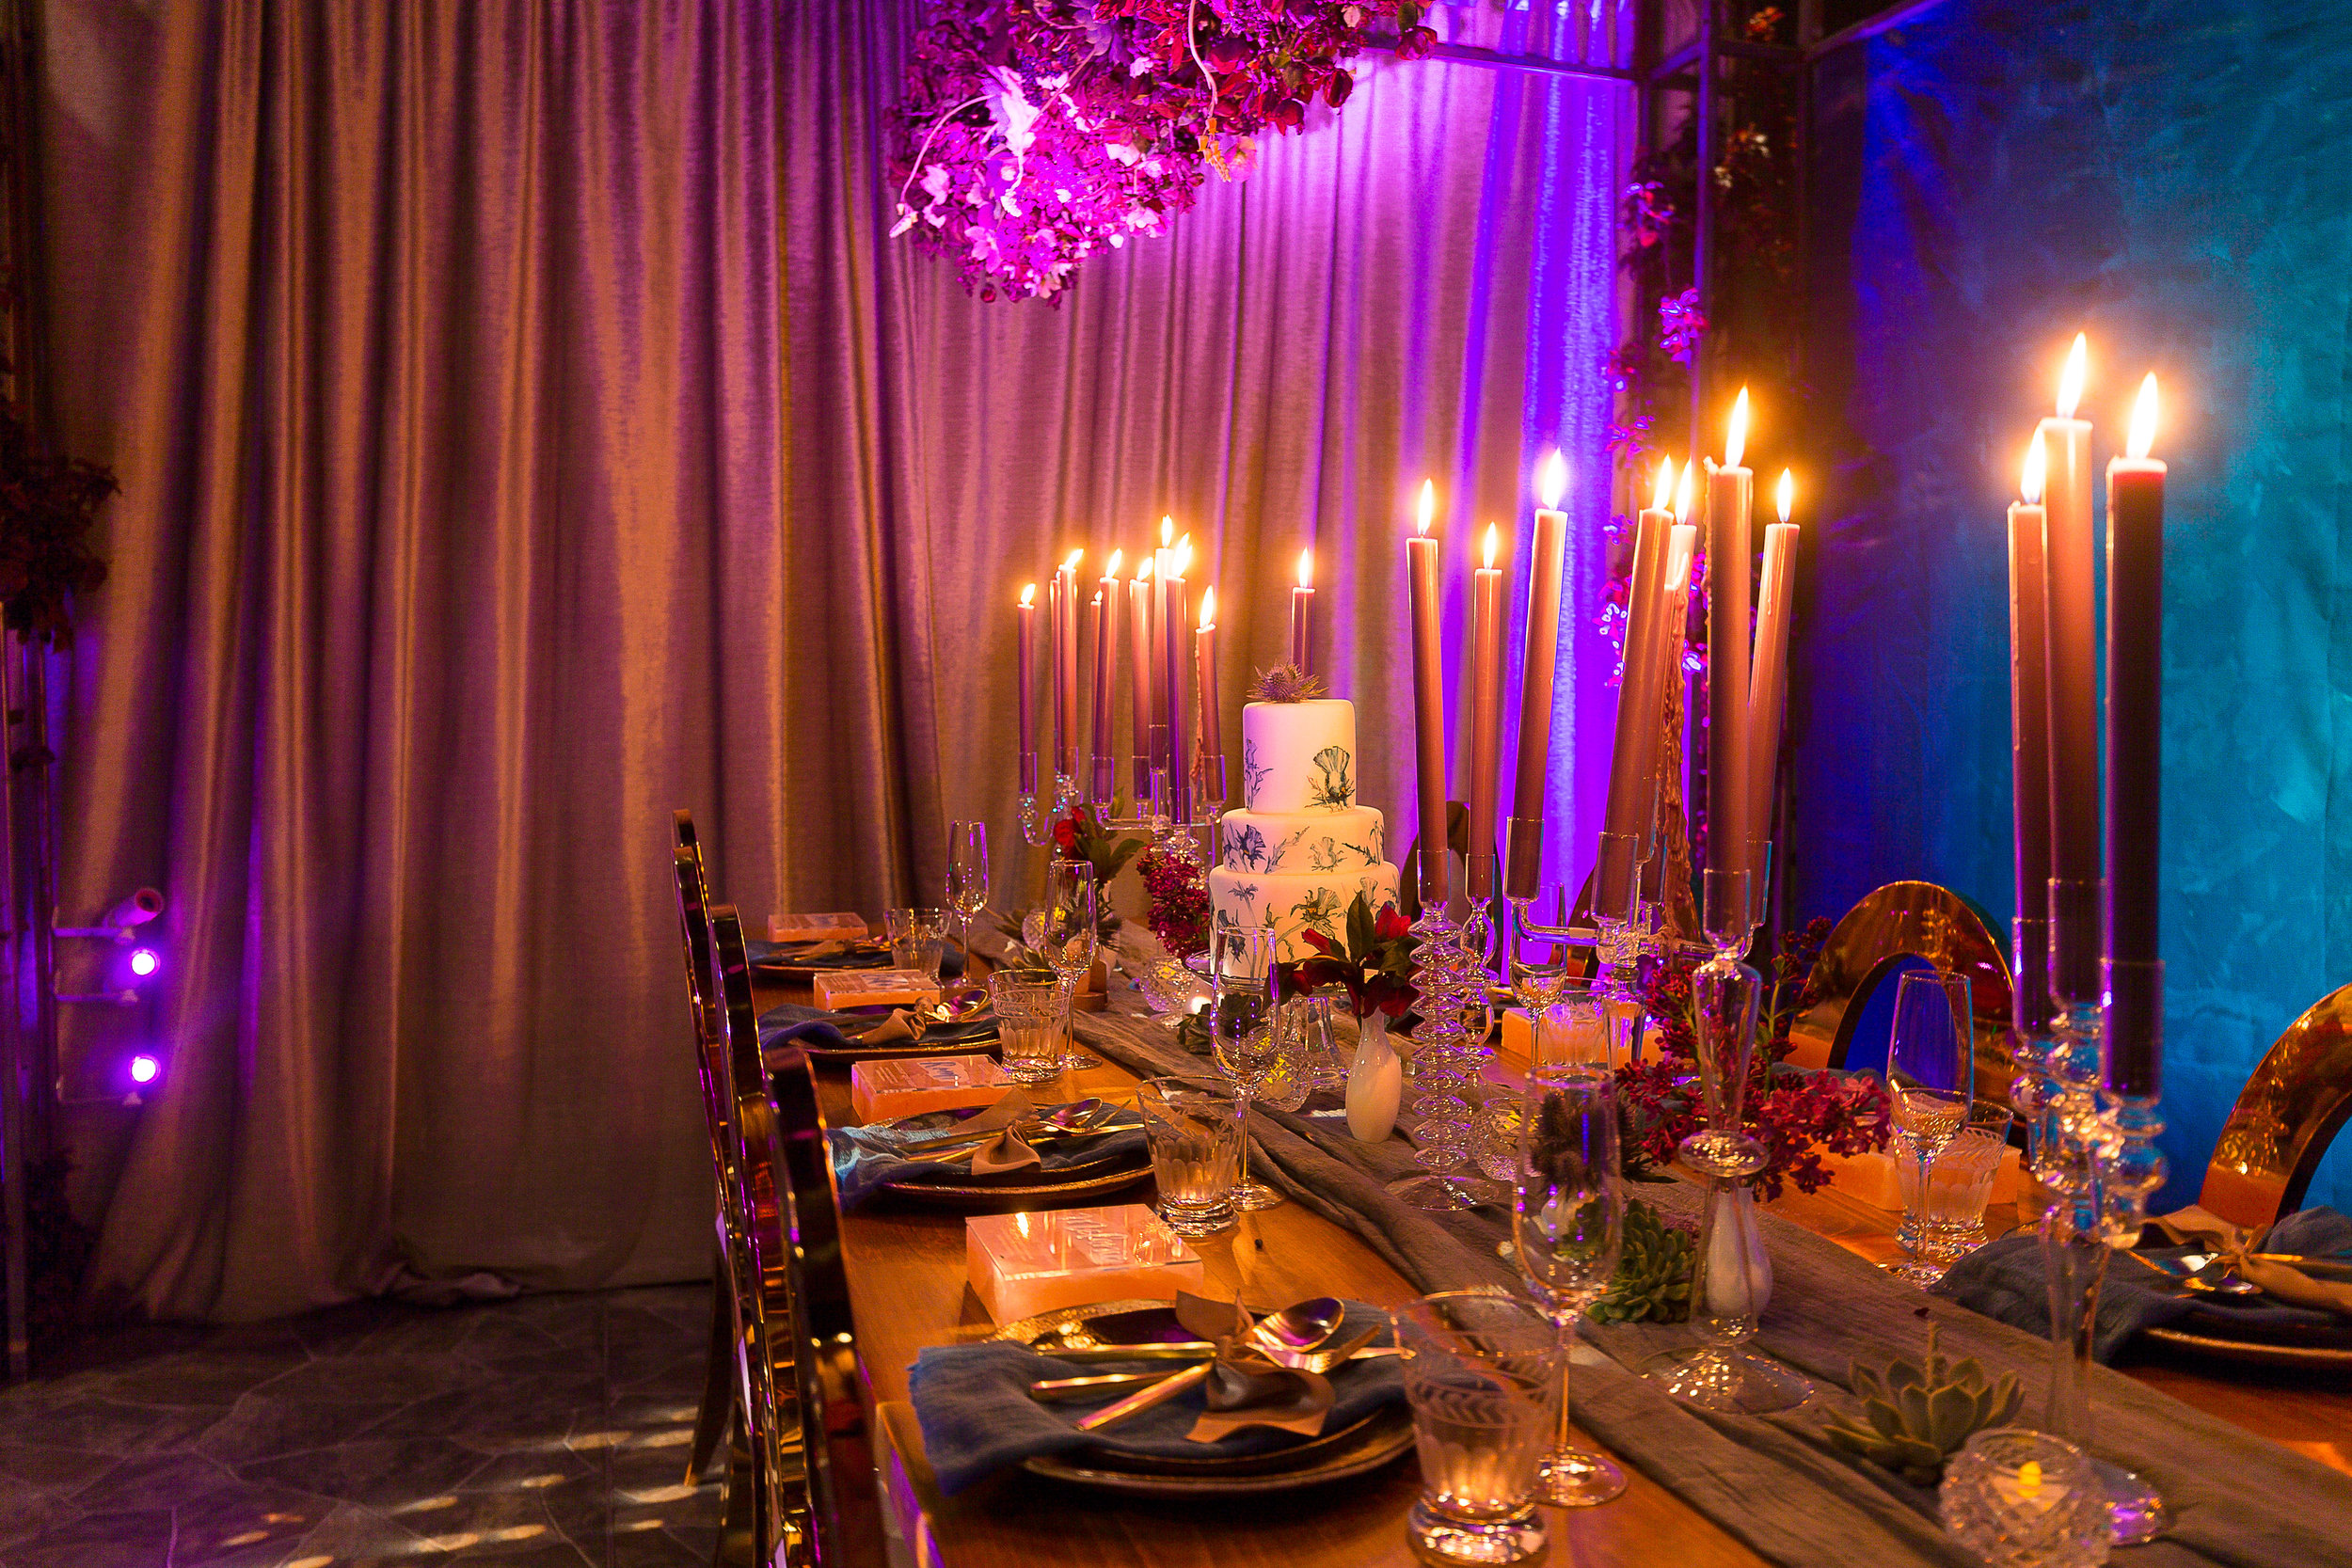 040-Chantal-Events-Space&Details.jpg